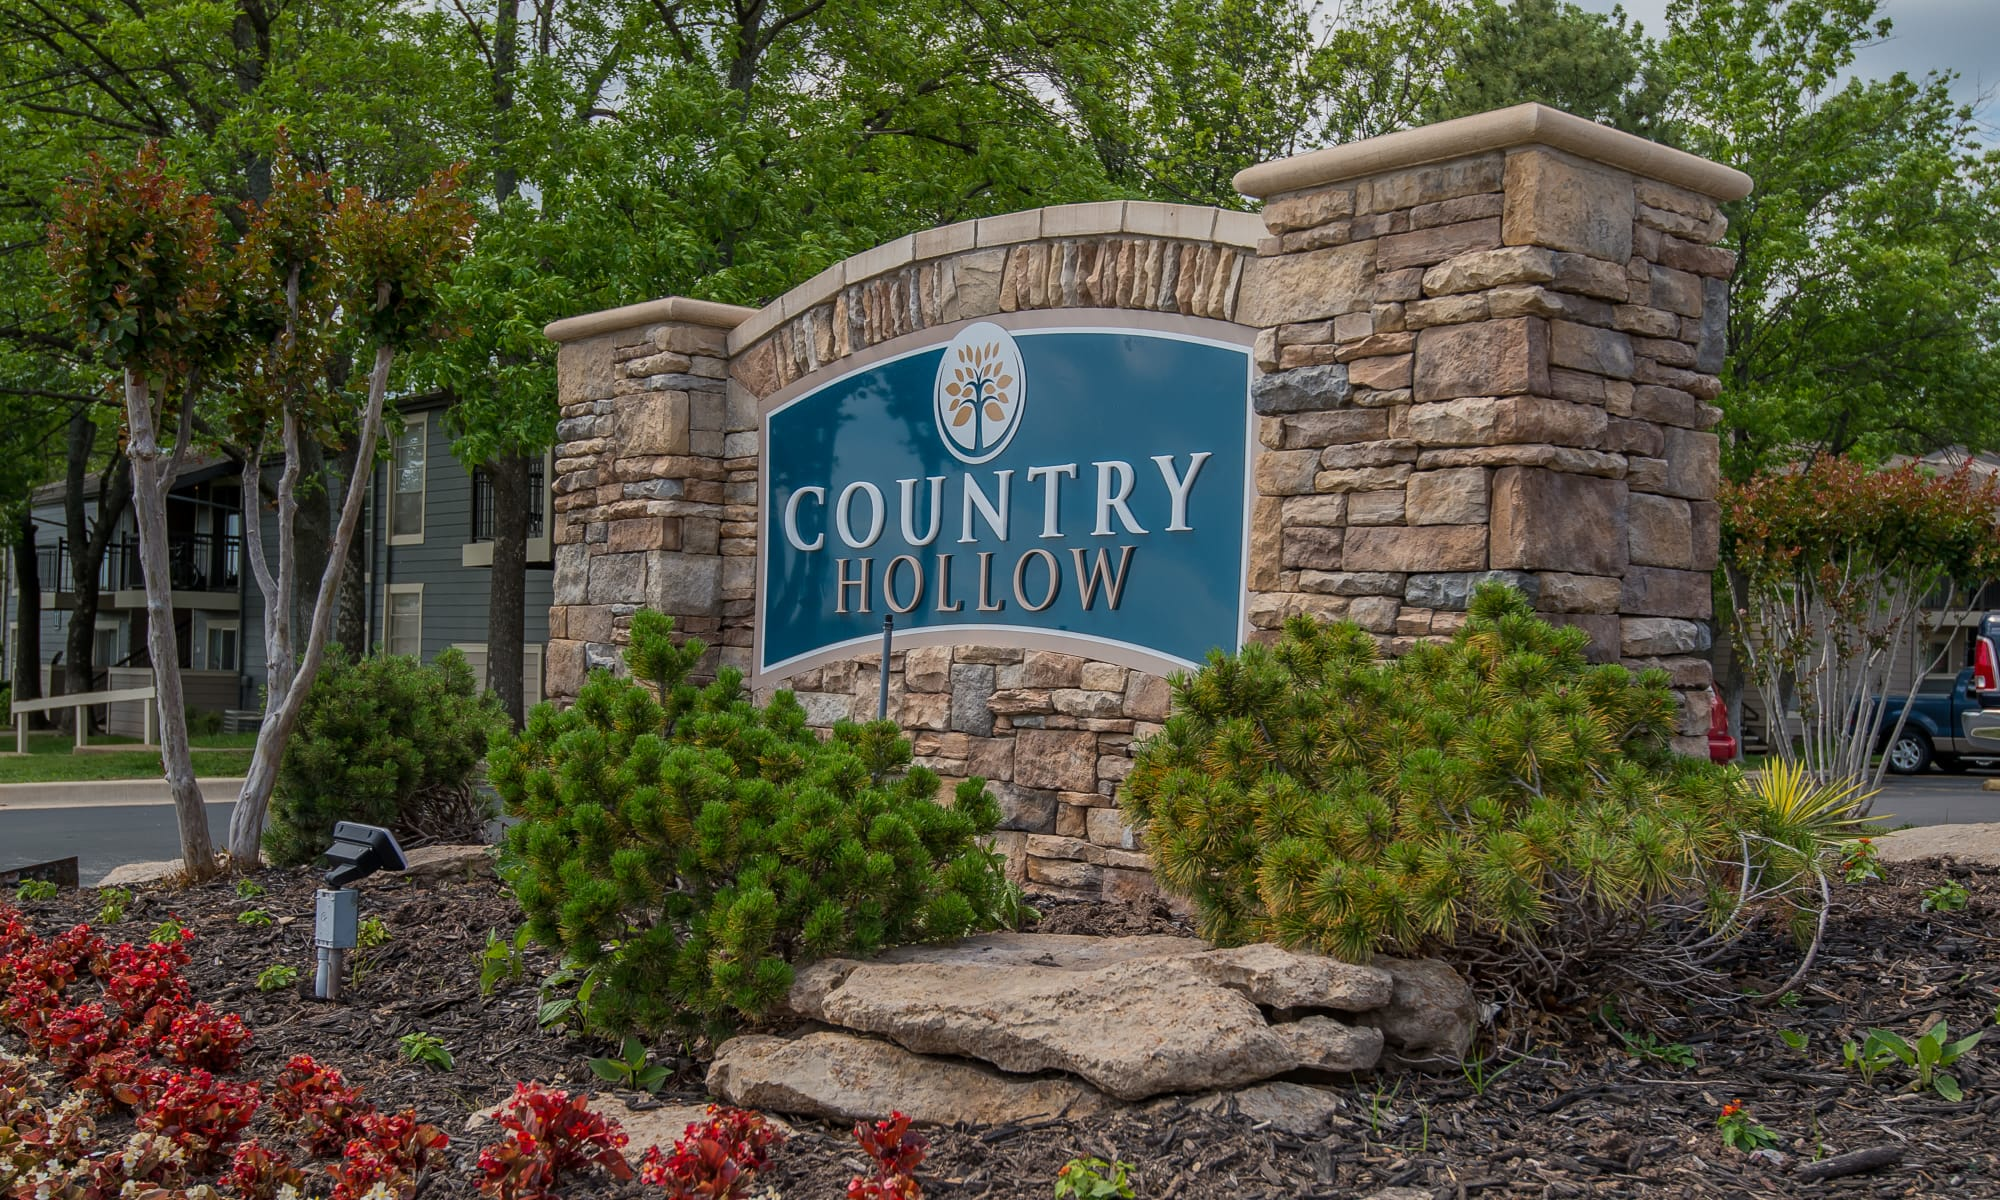 Welcome sign at Country Hollow apartments in Tulsa, Oklahoma